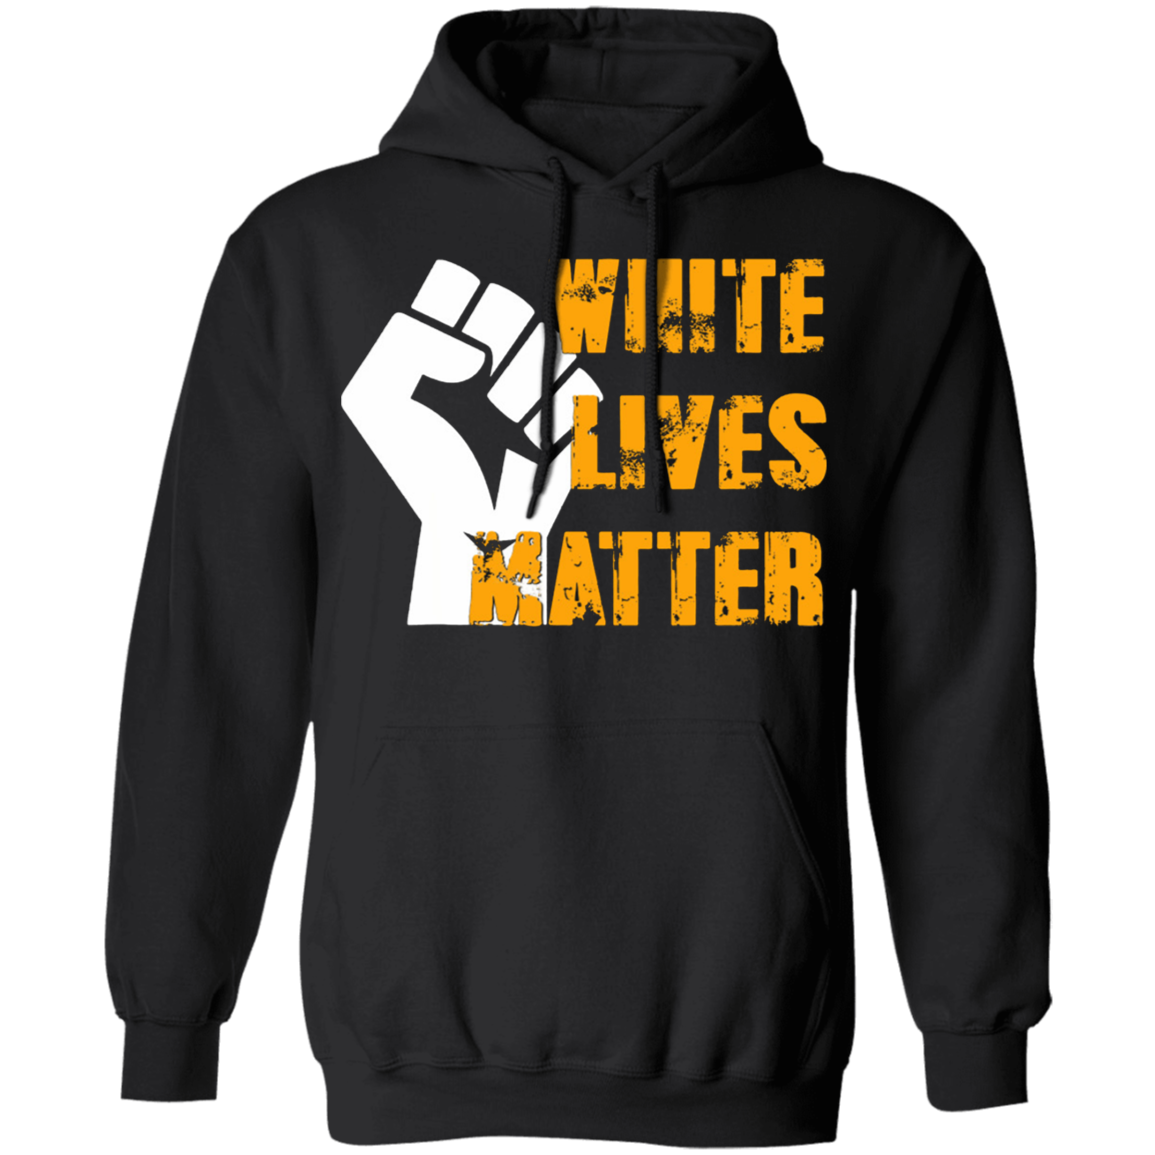 George Floyd White Silence Is Violence Hoodie Black Lives Matter Protest